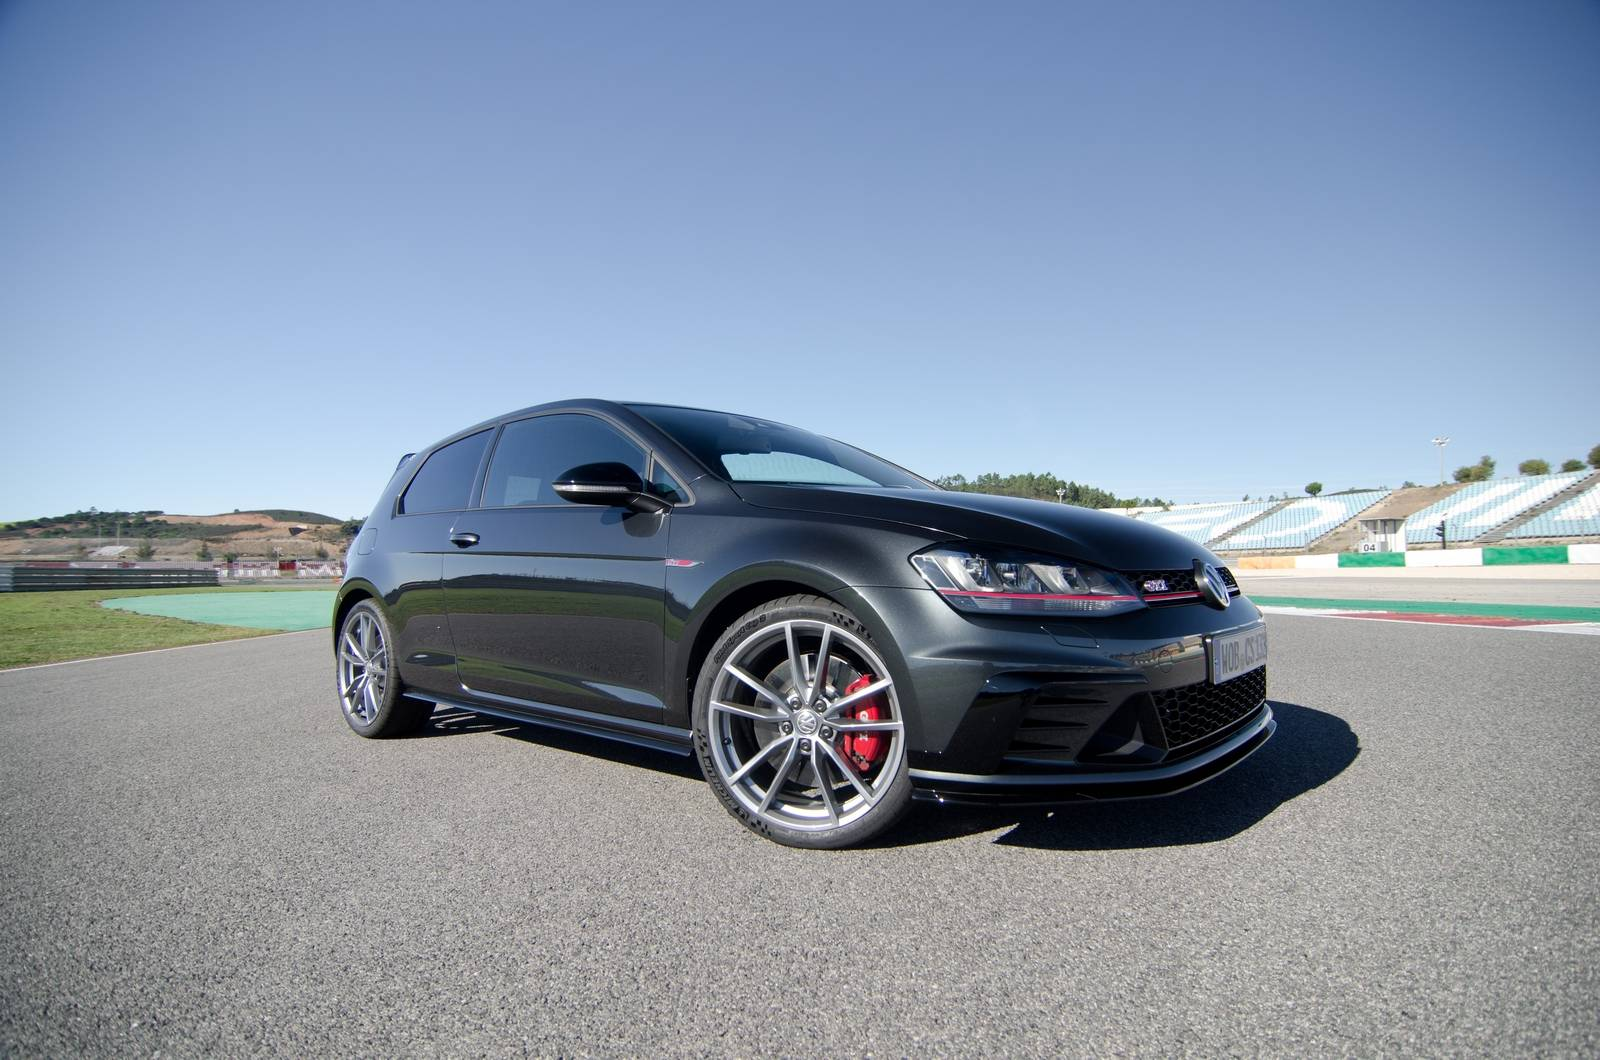 golf gti clubsport golf 7 gti community forum. Black Bedroom Furniture Sets. Home Design Ideas